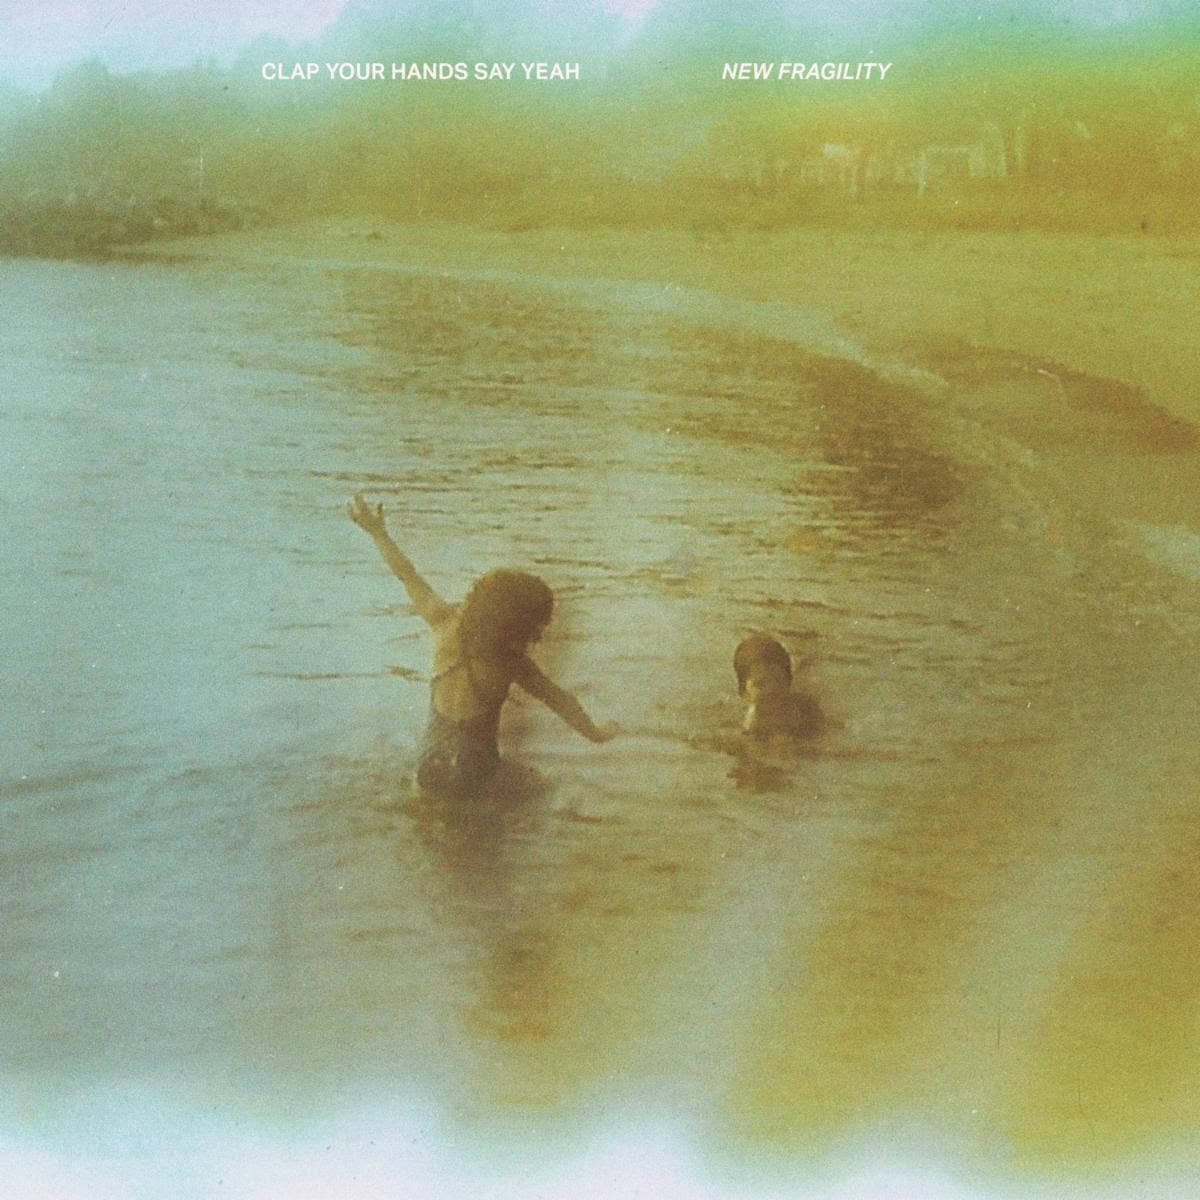 """Thousand Oaks"" by Clap Your Hands Say Yeah is Northern Transmissions Song of the Day"